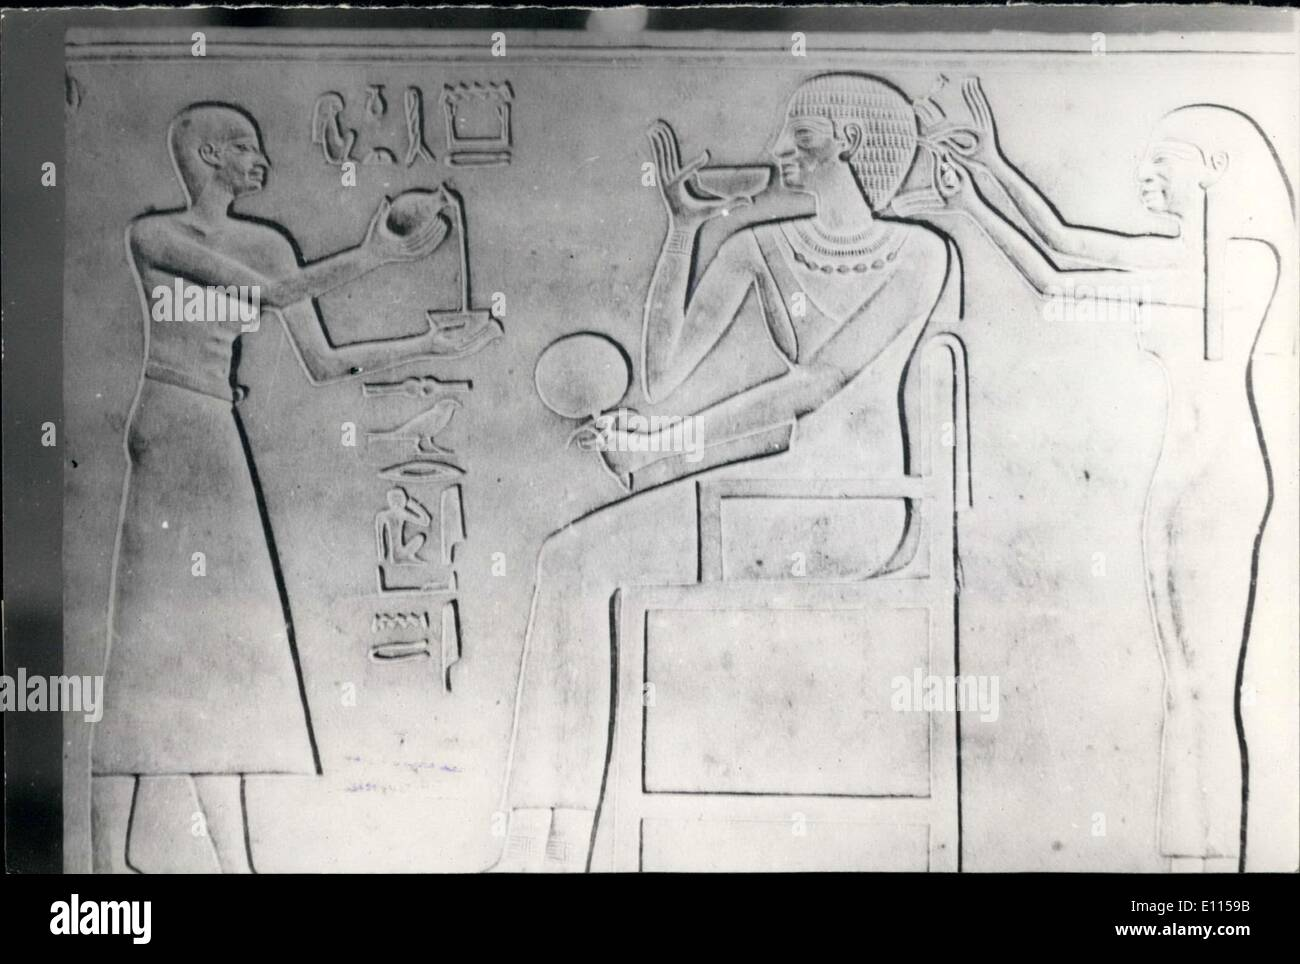 Sep. 09, 1975 - Modern Woman of Ancient Times: A drawing on papyrus showing Queen Clot, wife of Farao amen Hoteb, making her make up. A maid is dressing her hair, and onother fouring milk in a cup for her to driknk during her make-up. She drinking some beverage and holding a mirror in her hand. - Stock Image